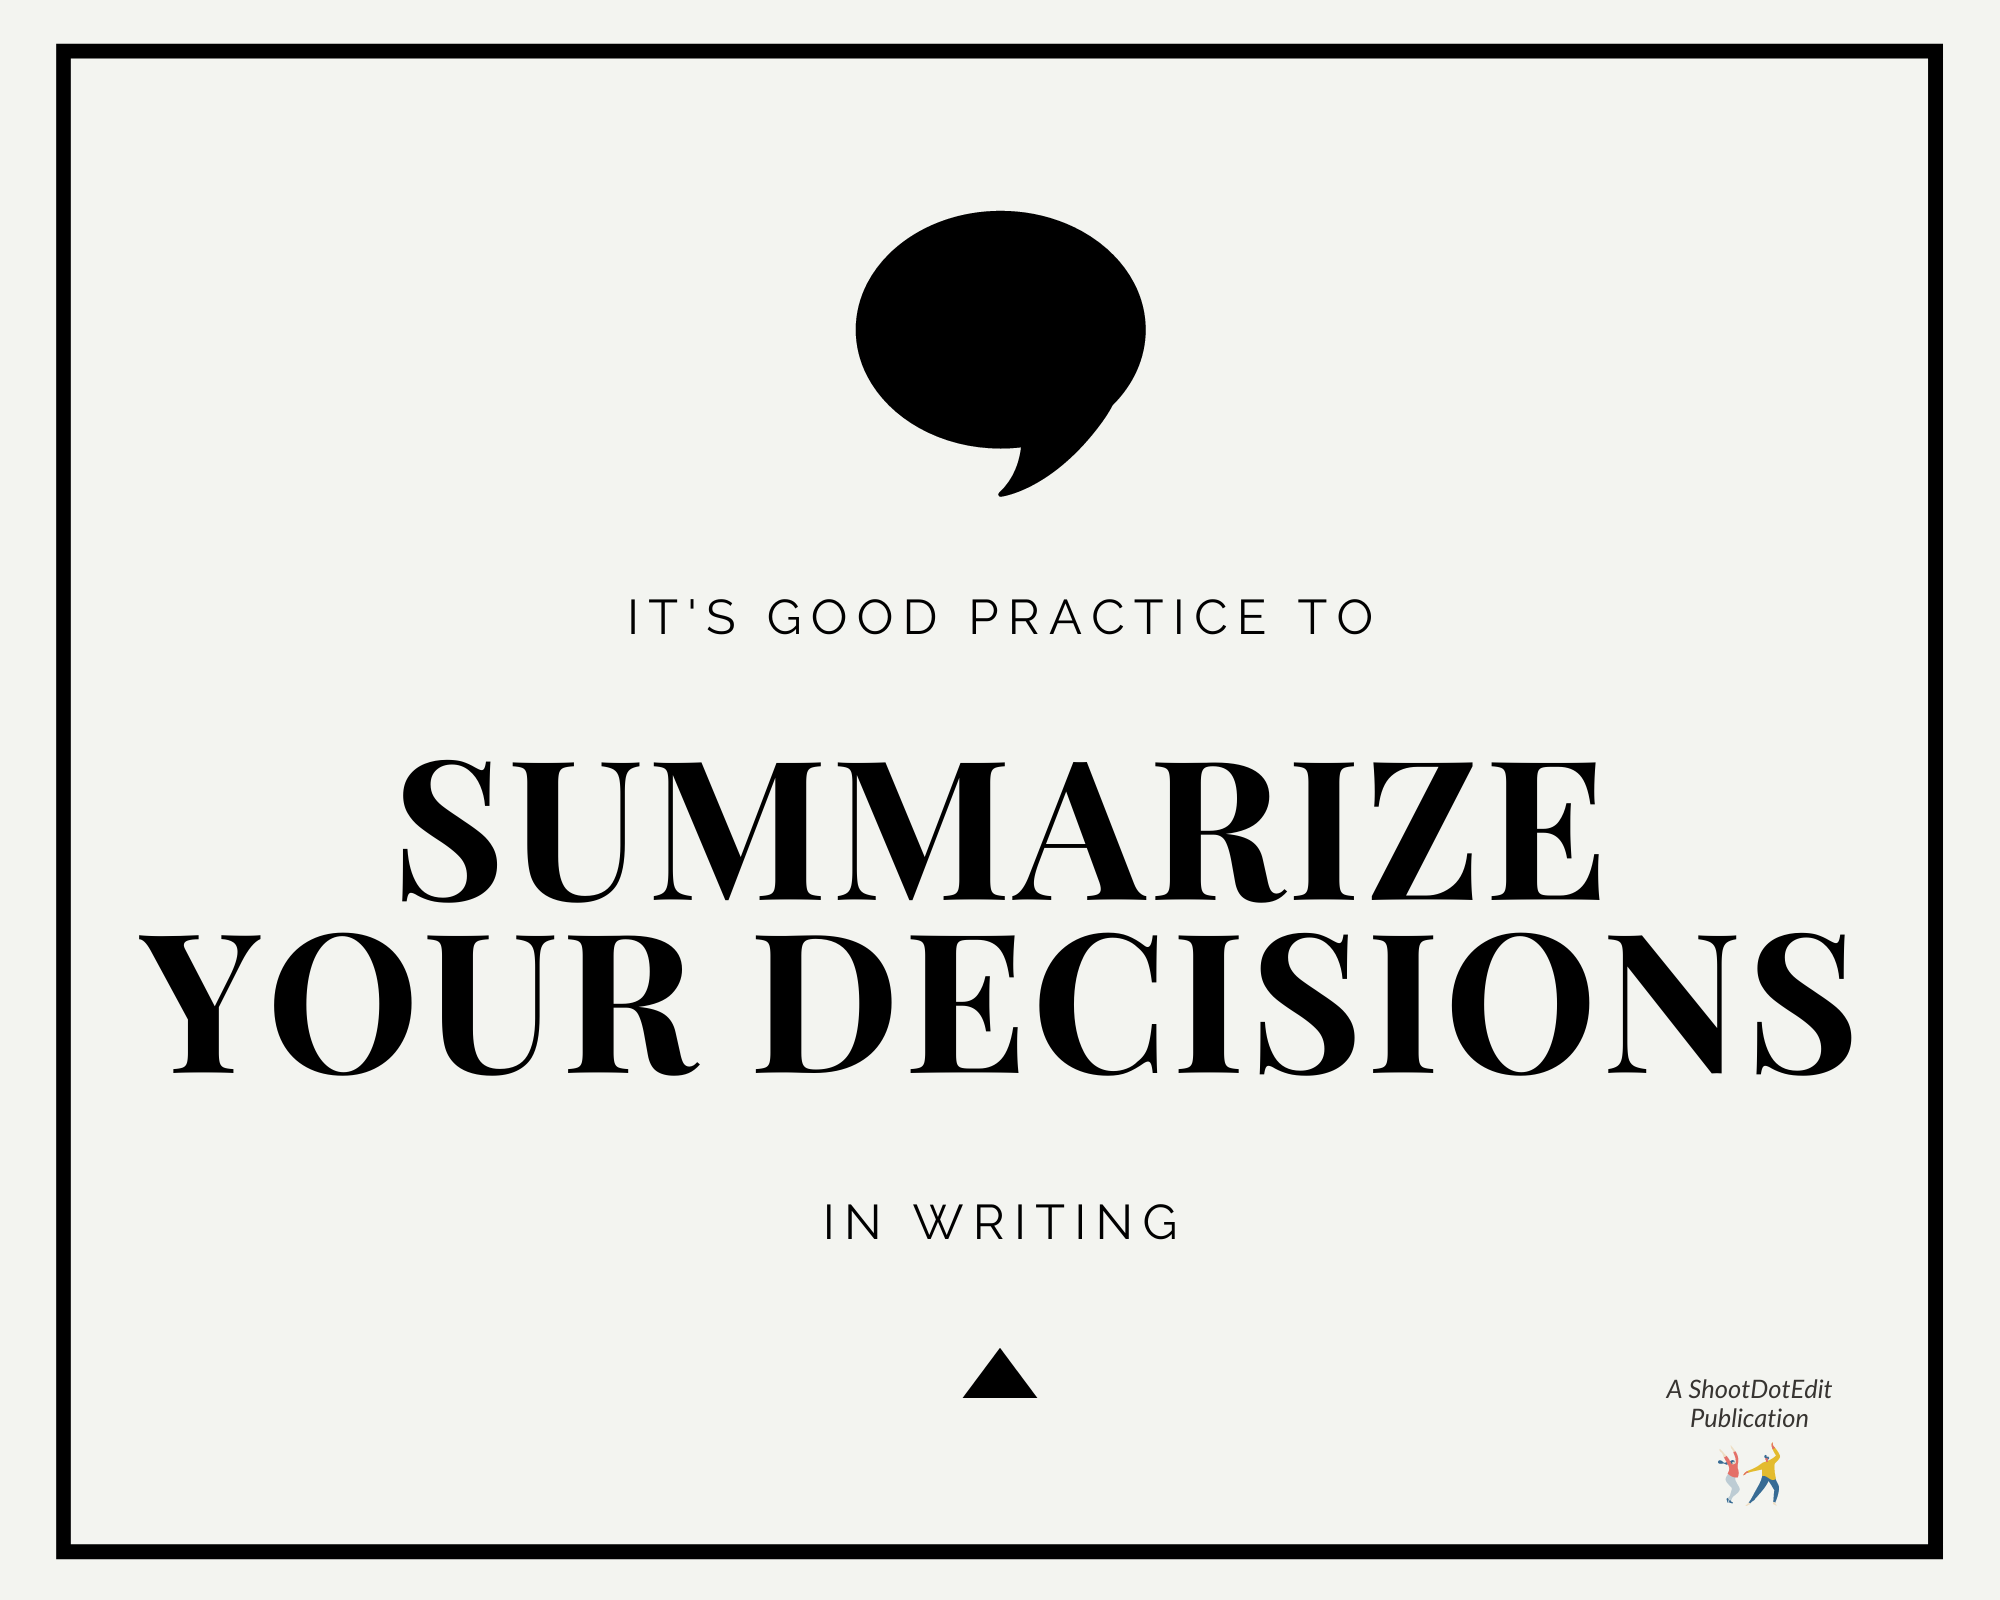 Infographic stating it's good practice to summarize your decisions in writing